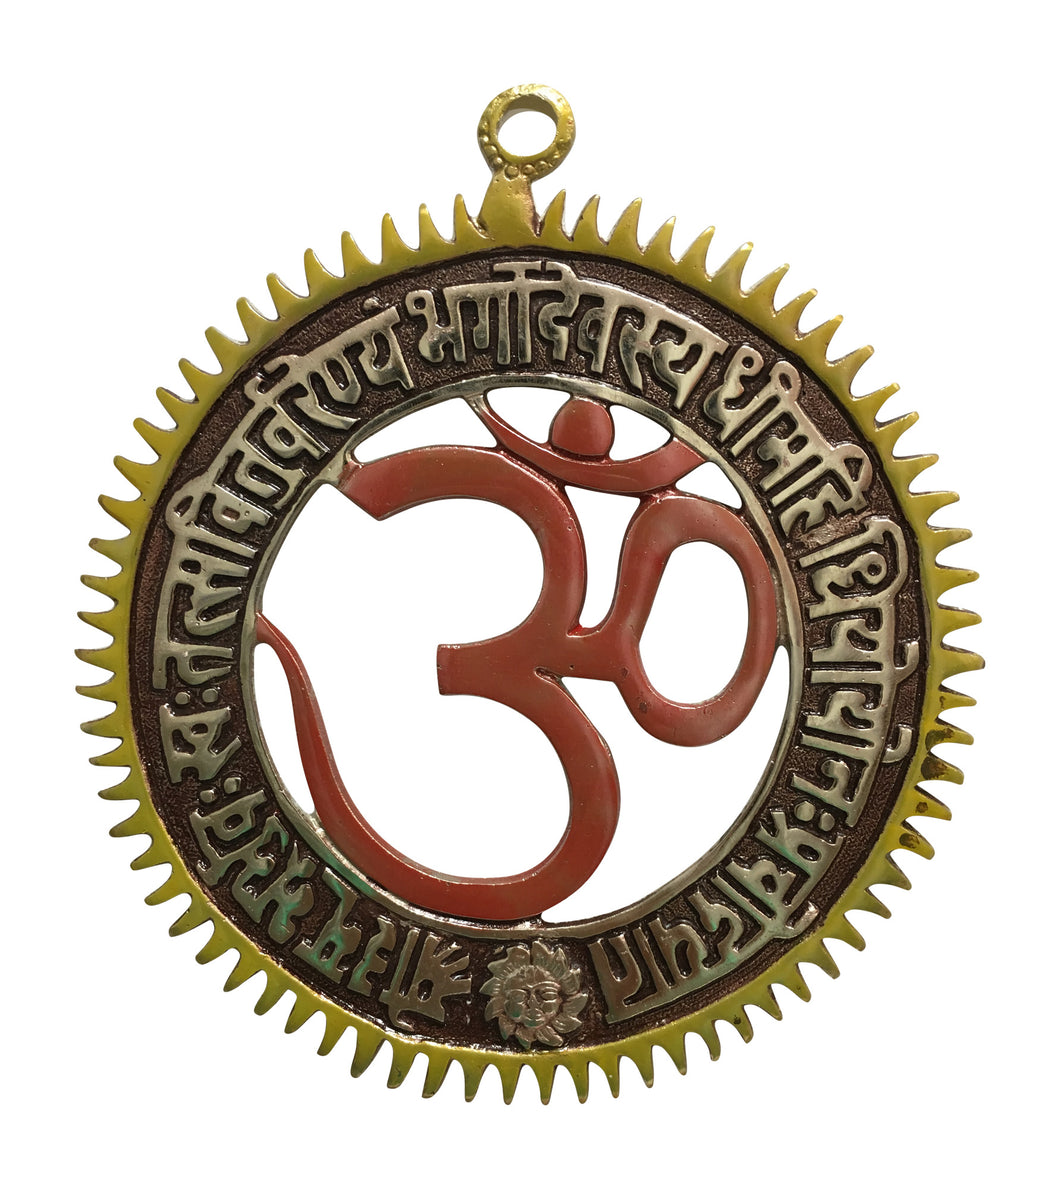 Red & Gold Om/Ohm Gayatri Mantra Hindu Vintage Metal Wall Plaque - Ambali Fashion